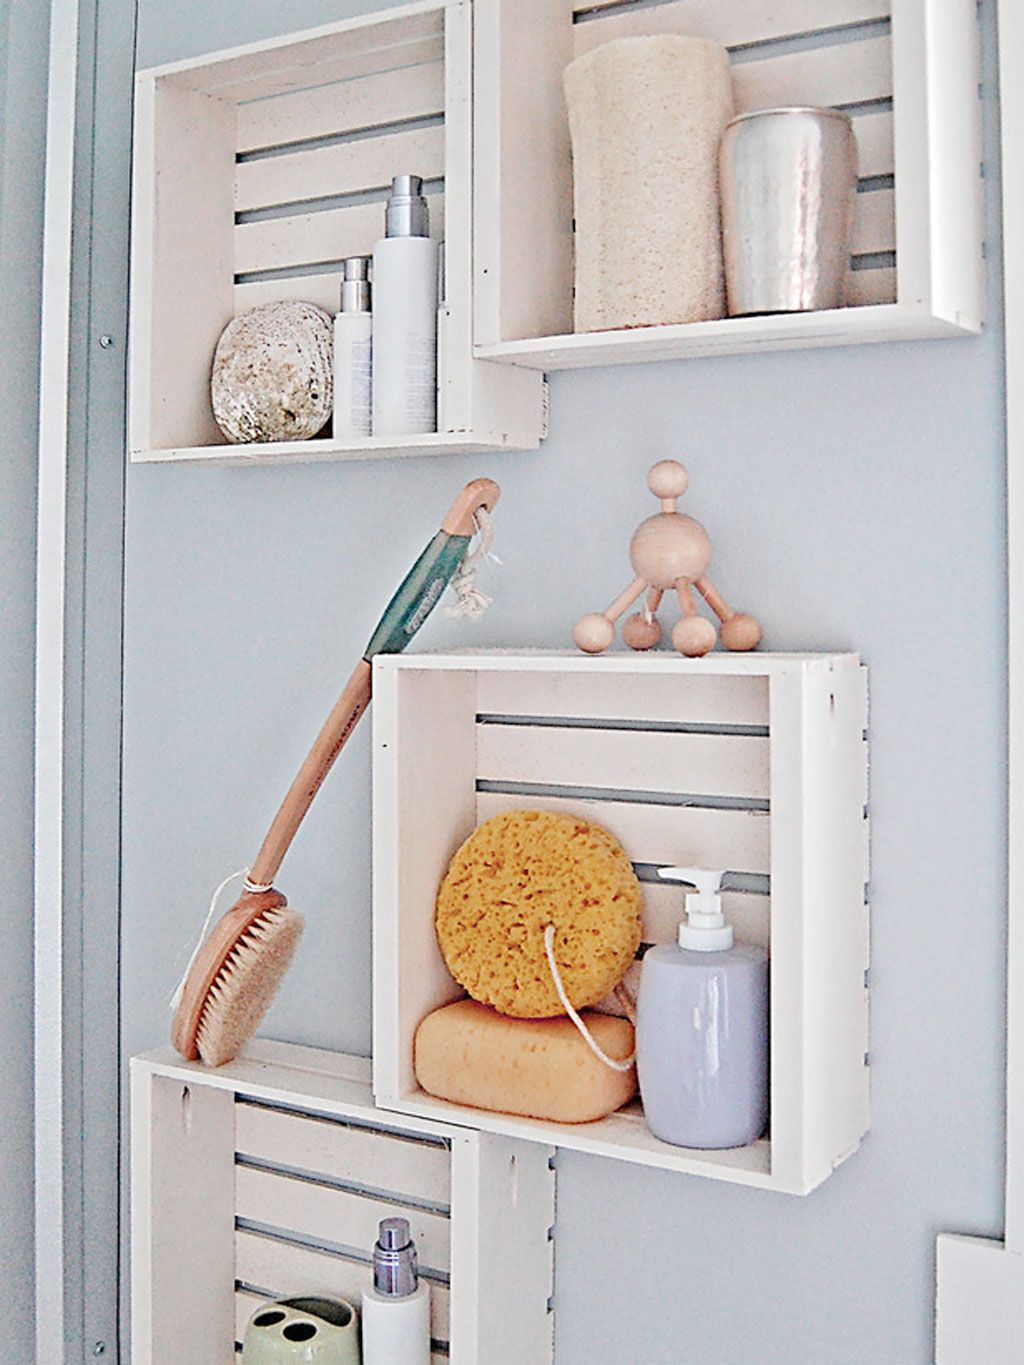 Photo Gallery For Photographers wall shelves bathroom storage ideas for small spaces